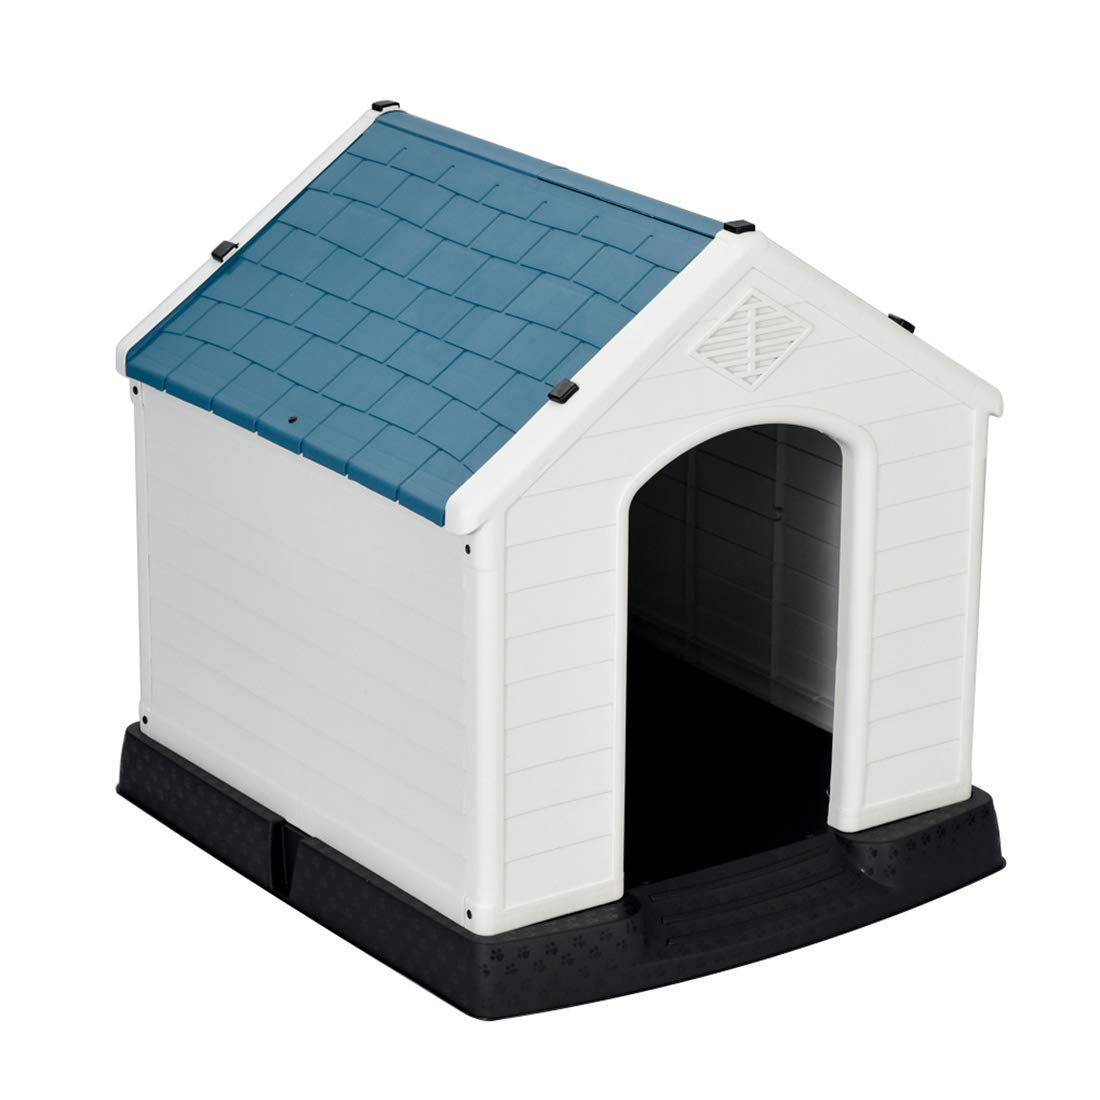 Good Life Outdoor Indoor Waterproof Plastic Dog House for Medium to Large Dogs Outdoor Winter Pet Dog House Kennel Ventilate Blue & White Color